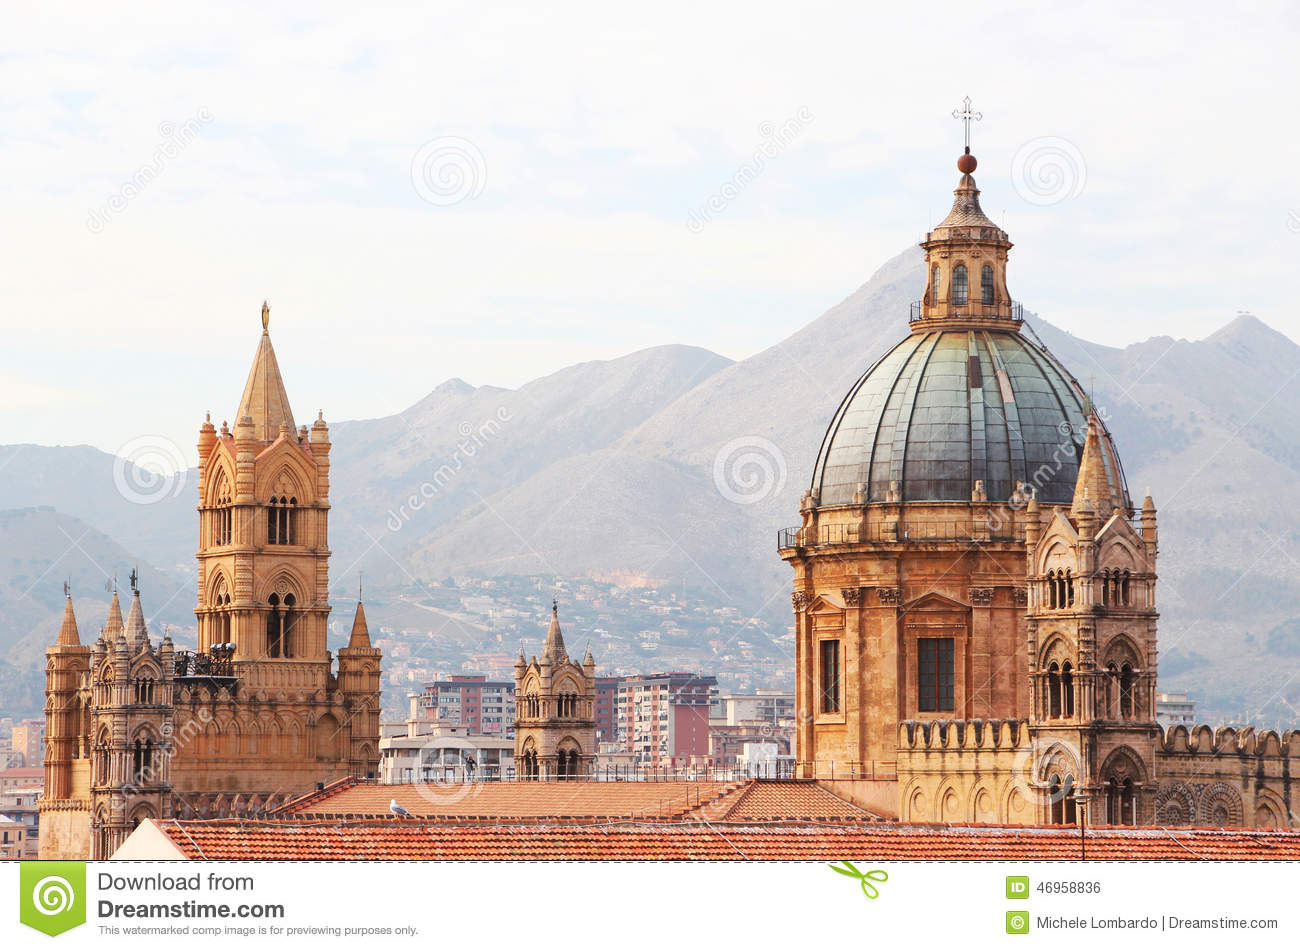 Cathedral of palermo, the dome and bell towers